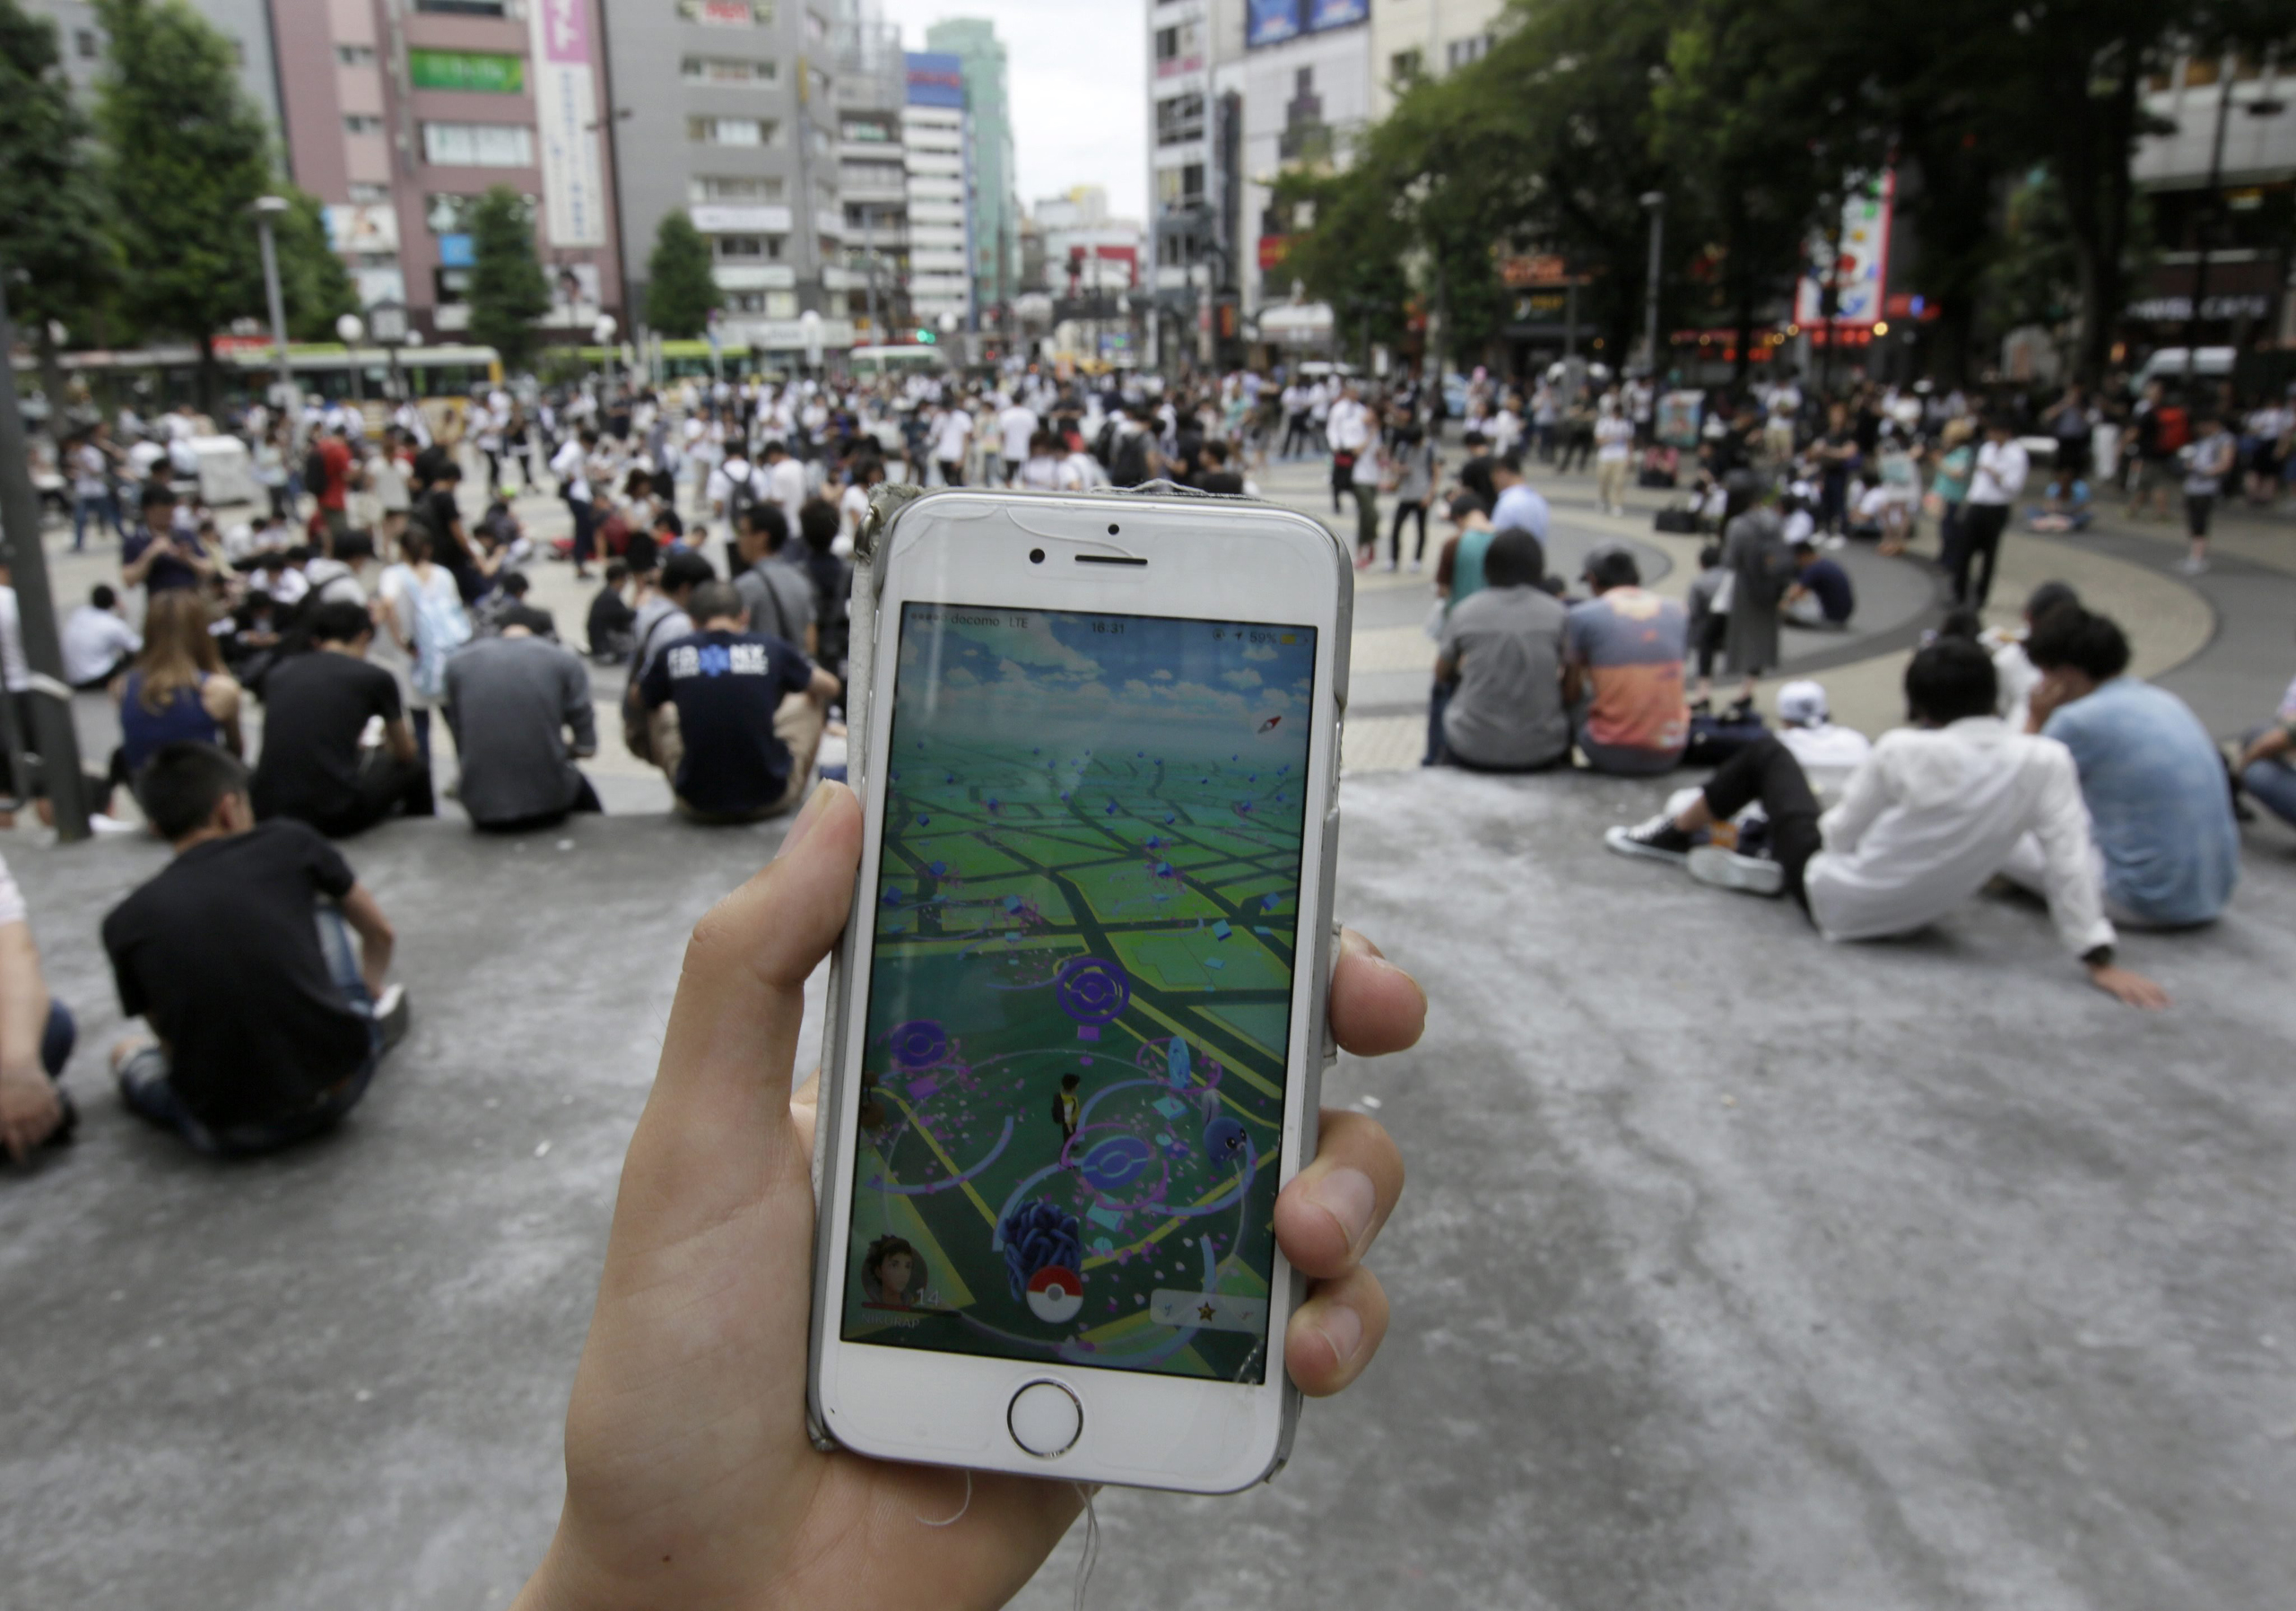 People play Pokemon Go at a park in Tokyo on July 25, 2016.